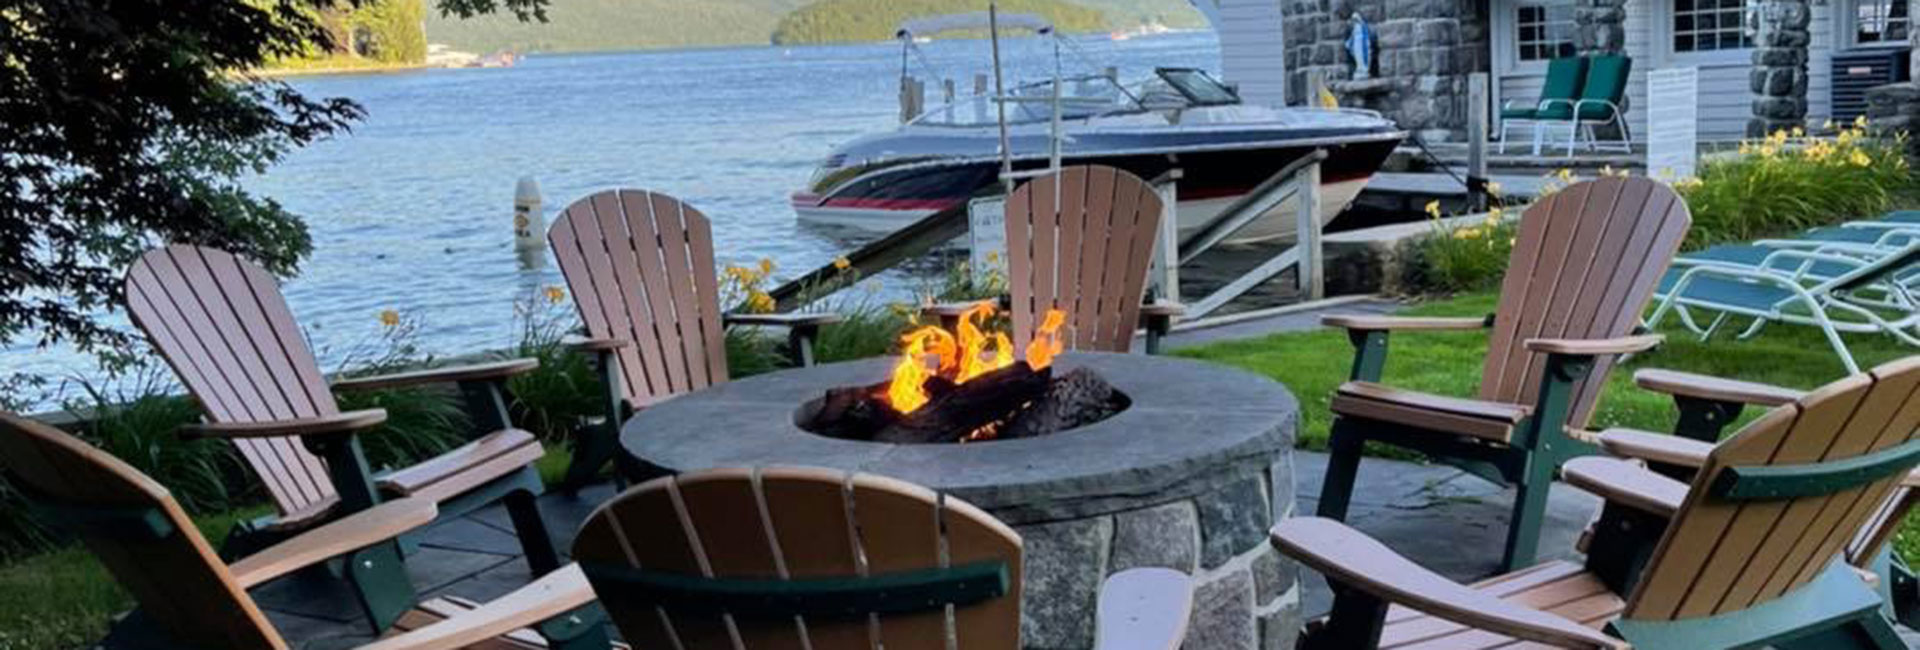 Fire pit lakeside at Boathouse Waterfront Lodging